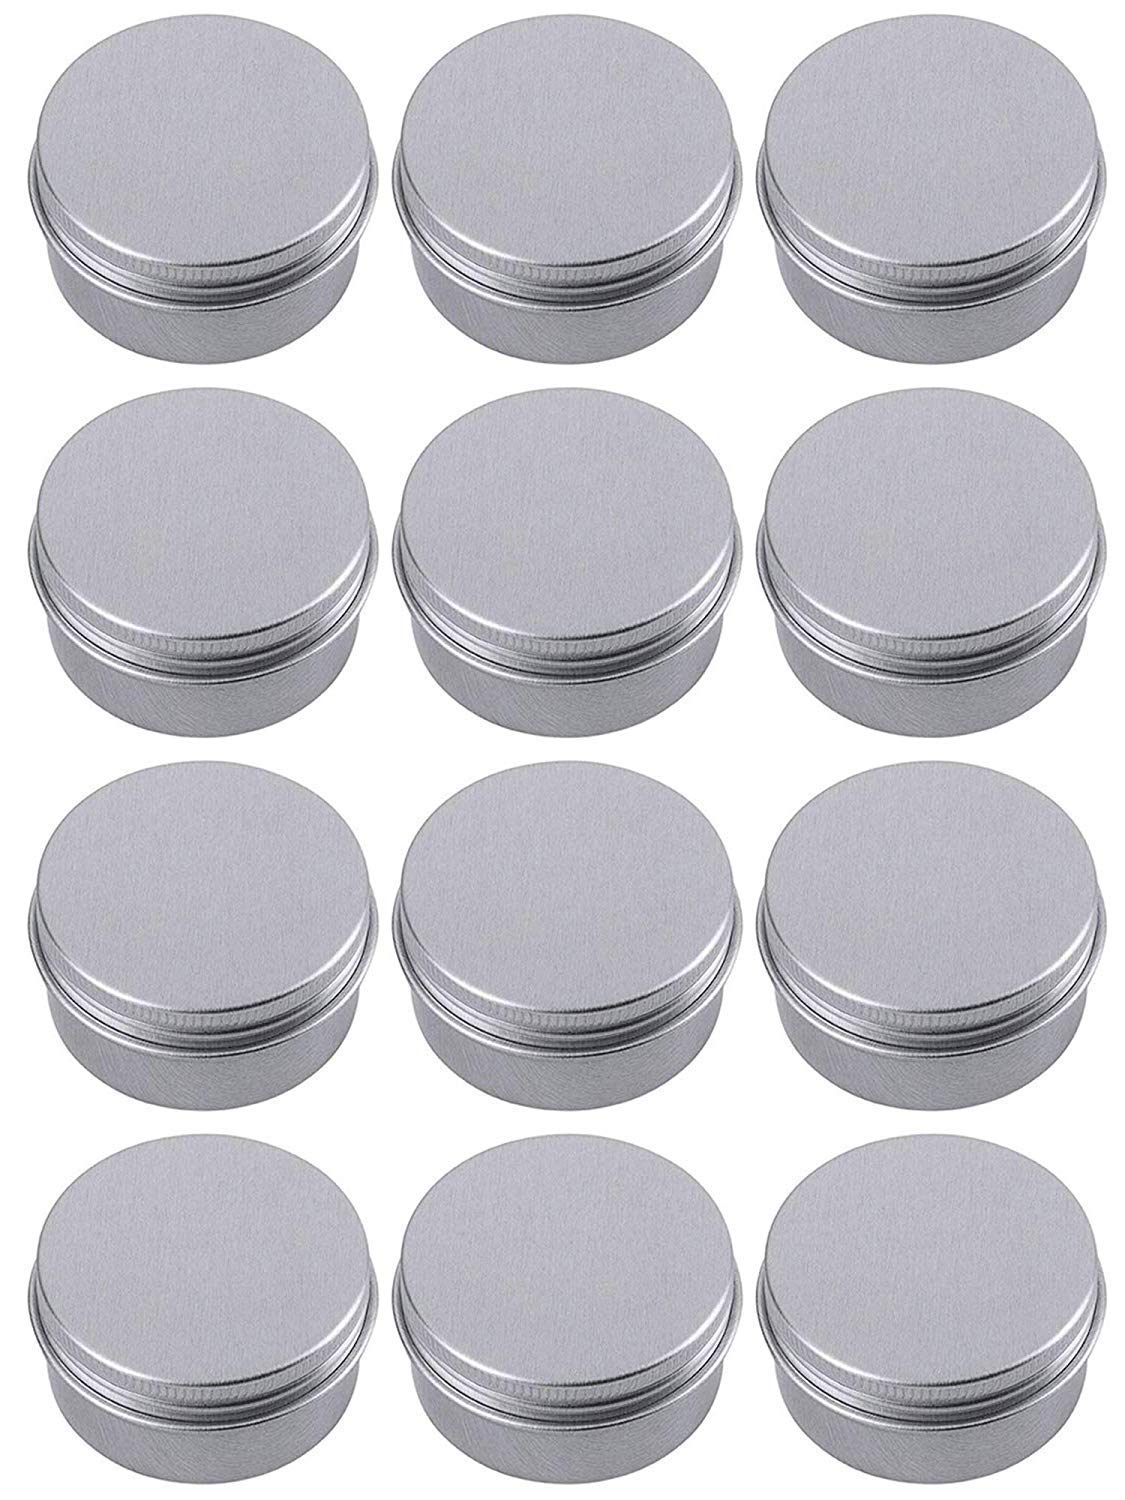 Hulless Aluminum Tin Jar 0.5oz Refillable Containers 15ml, Cosmetic Small tin, Aluminum Screw Lid Round Tin Container Bottle for Cosmetic ,Lip Balm, Cream, 12 Pack.